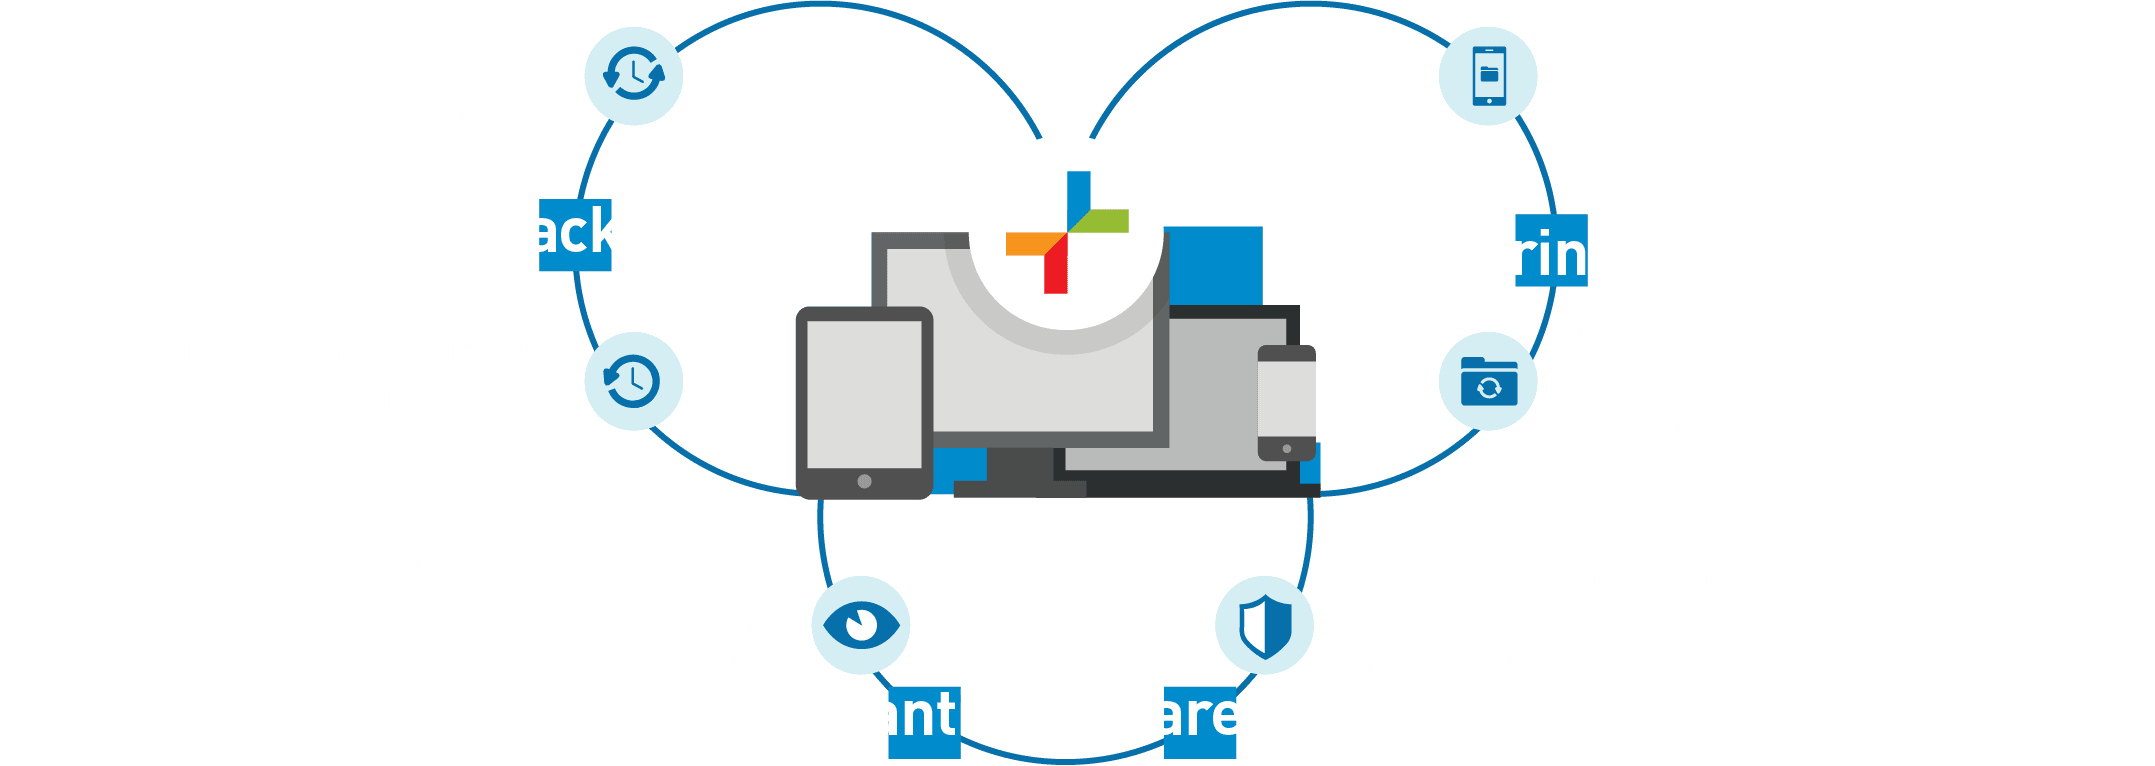 A crypto-ransomware infection poses two very hard choices for your company.